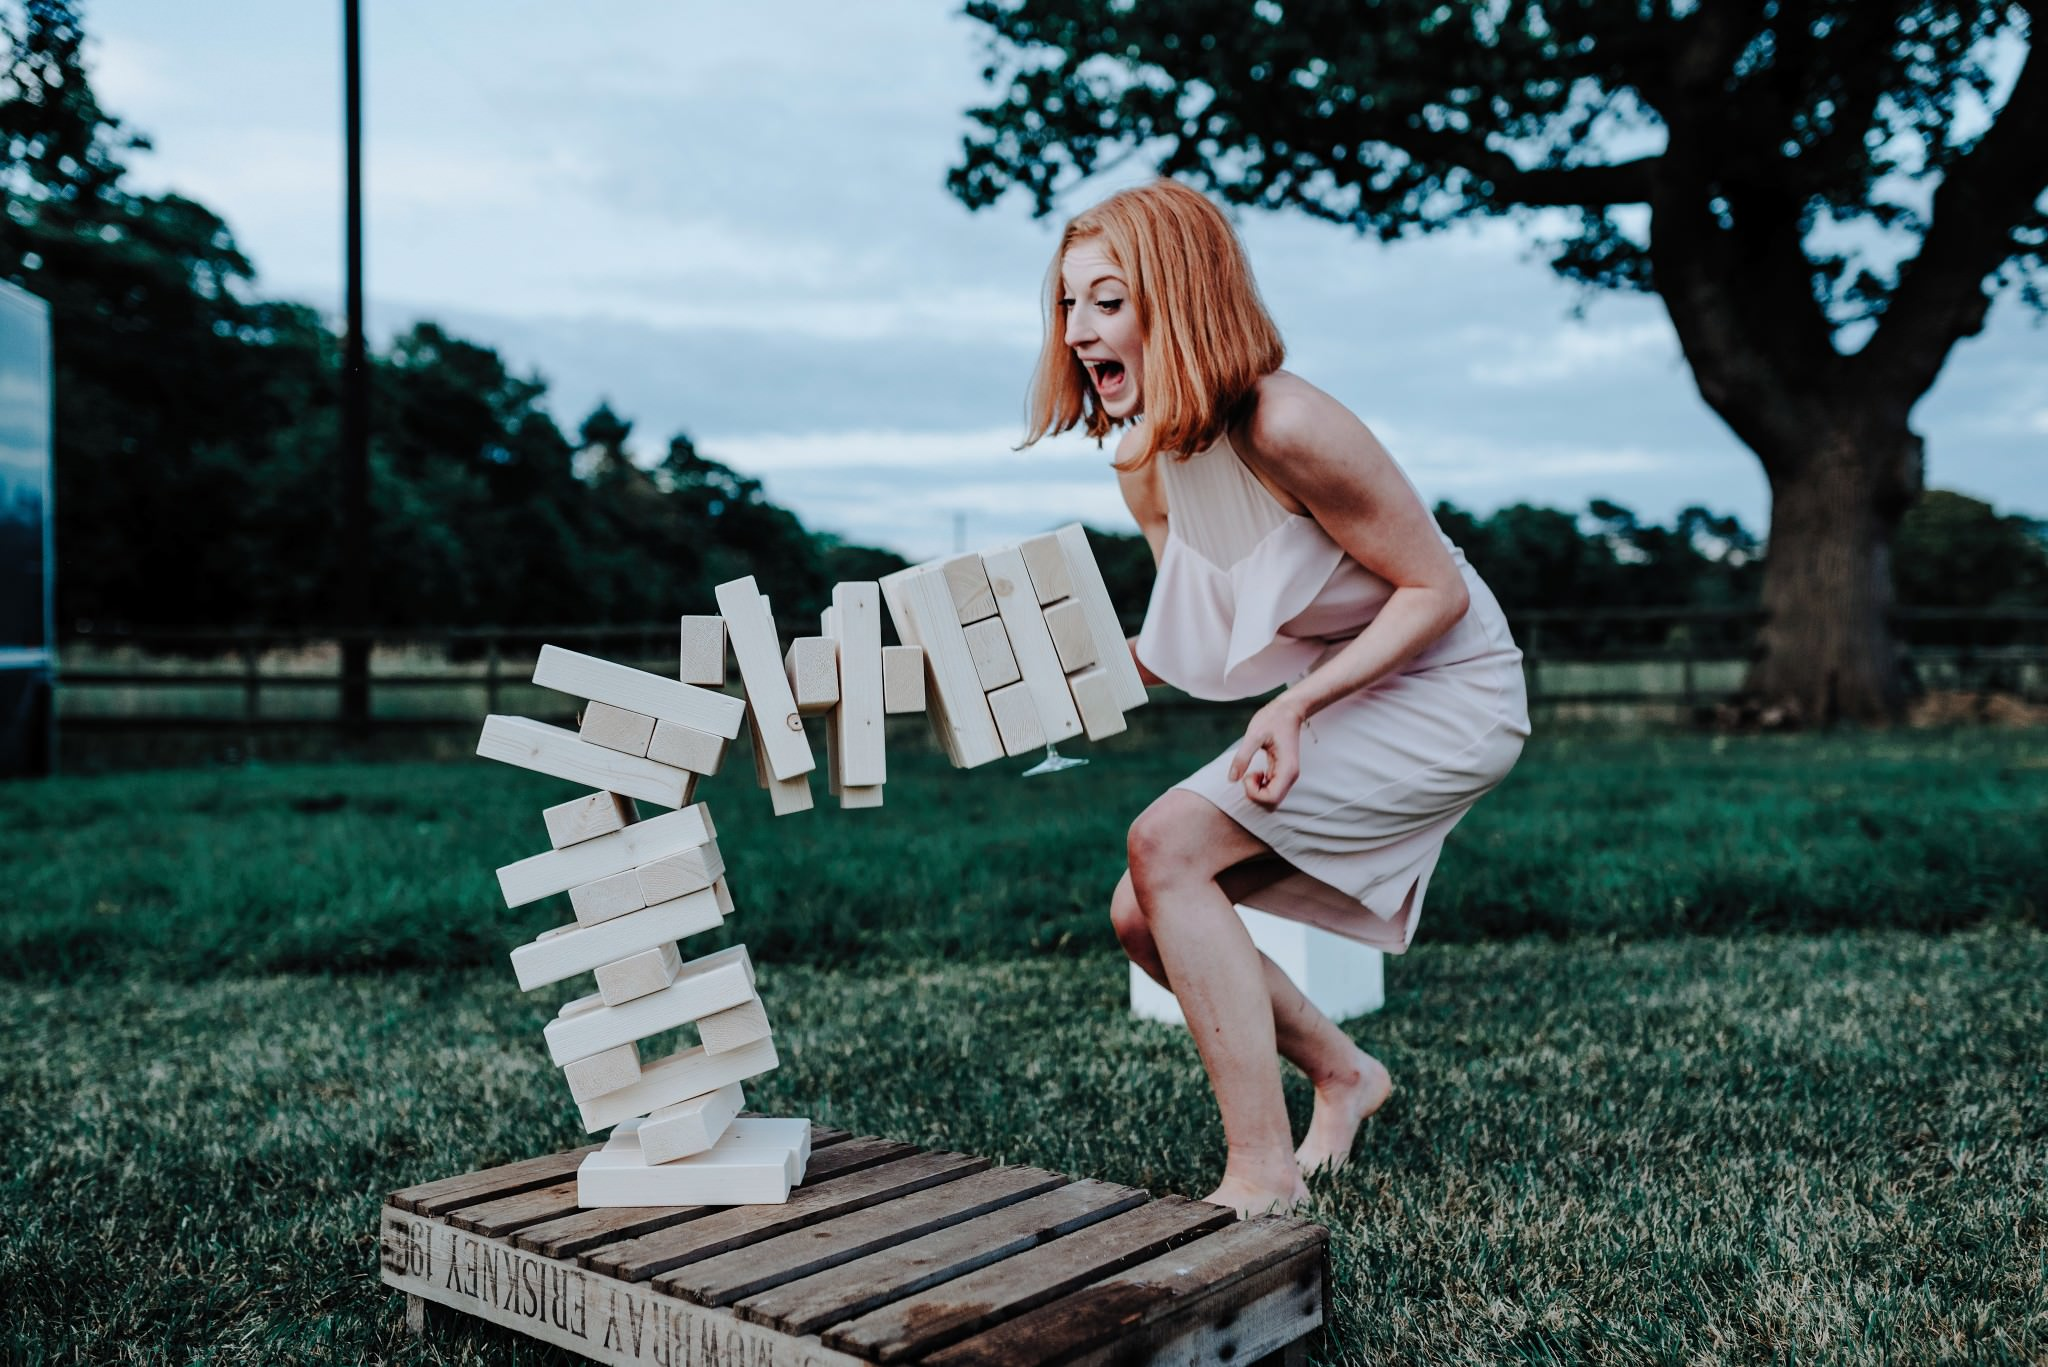 Falling jenga at a Cheshire Barn Wedding